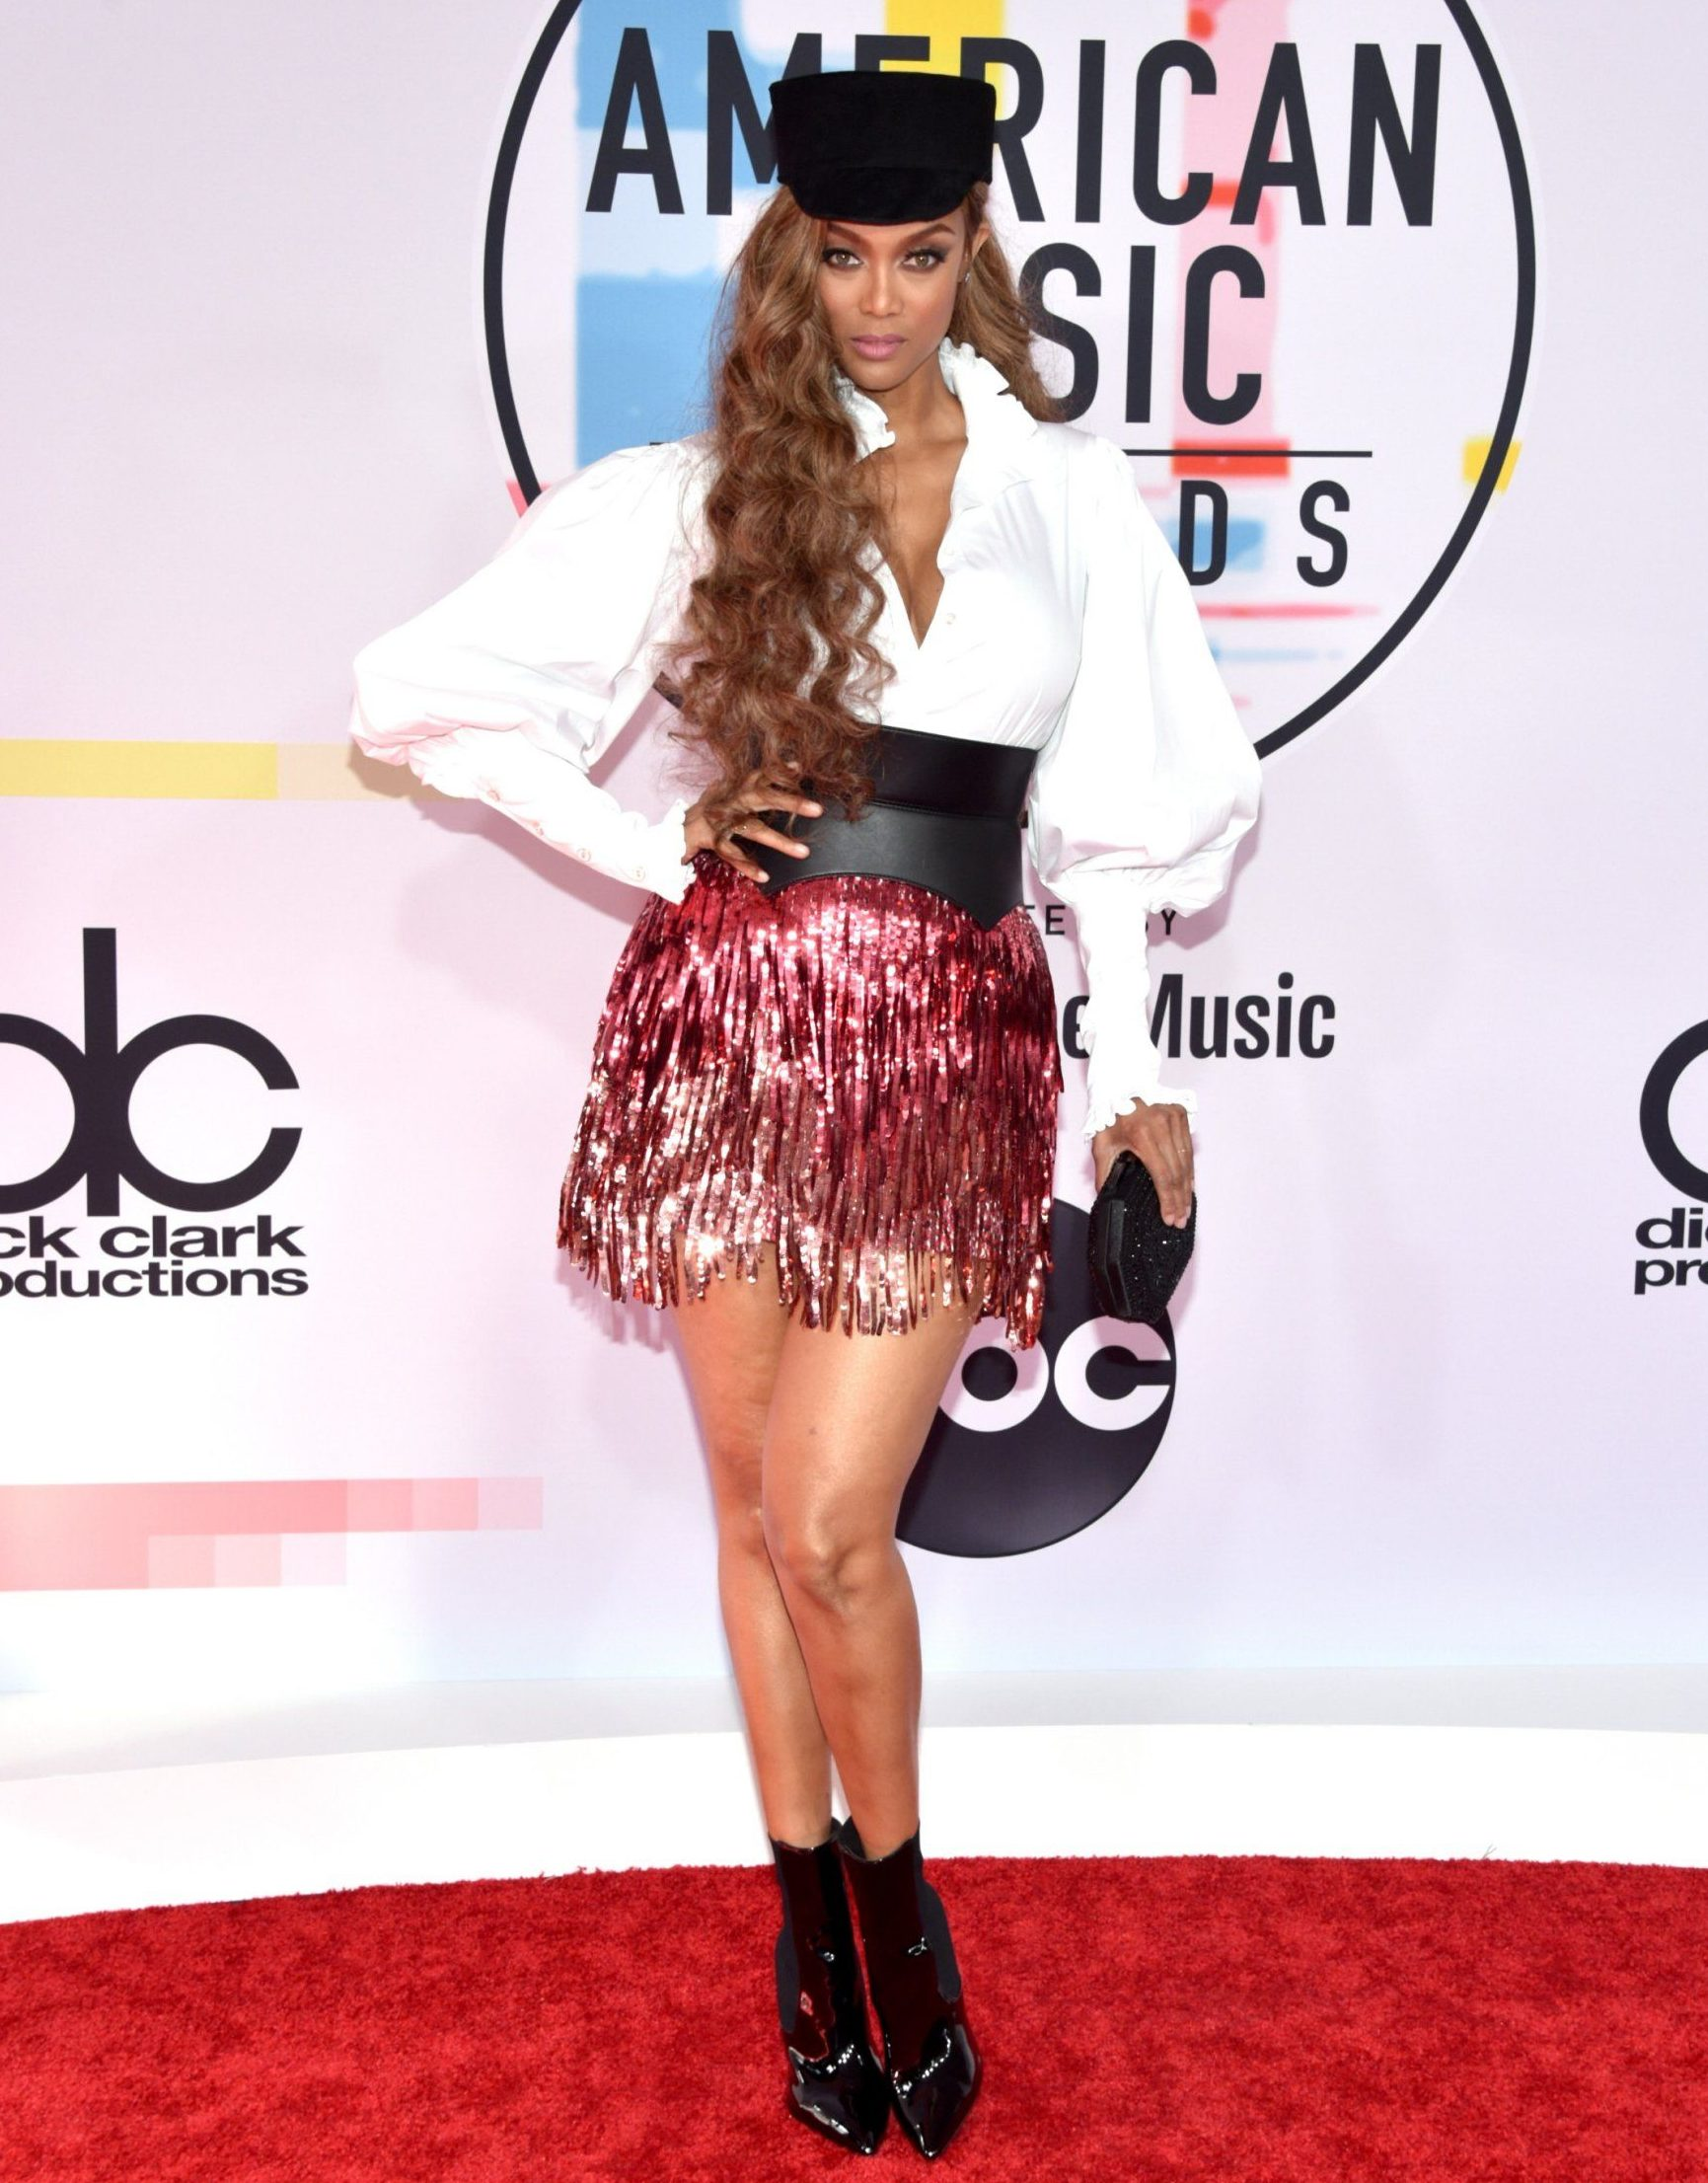 LOS ANGELES, CA - OCTOBER 09: Tyra Banks attends the 2018 American Music Awards at Microsoft Theater on October 9, 2018 in Los Angeles, California. (Photo by John Shearer/Getty Images For dcp)